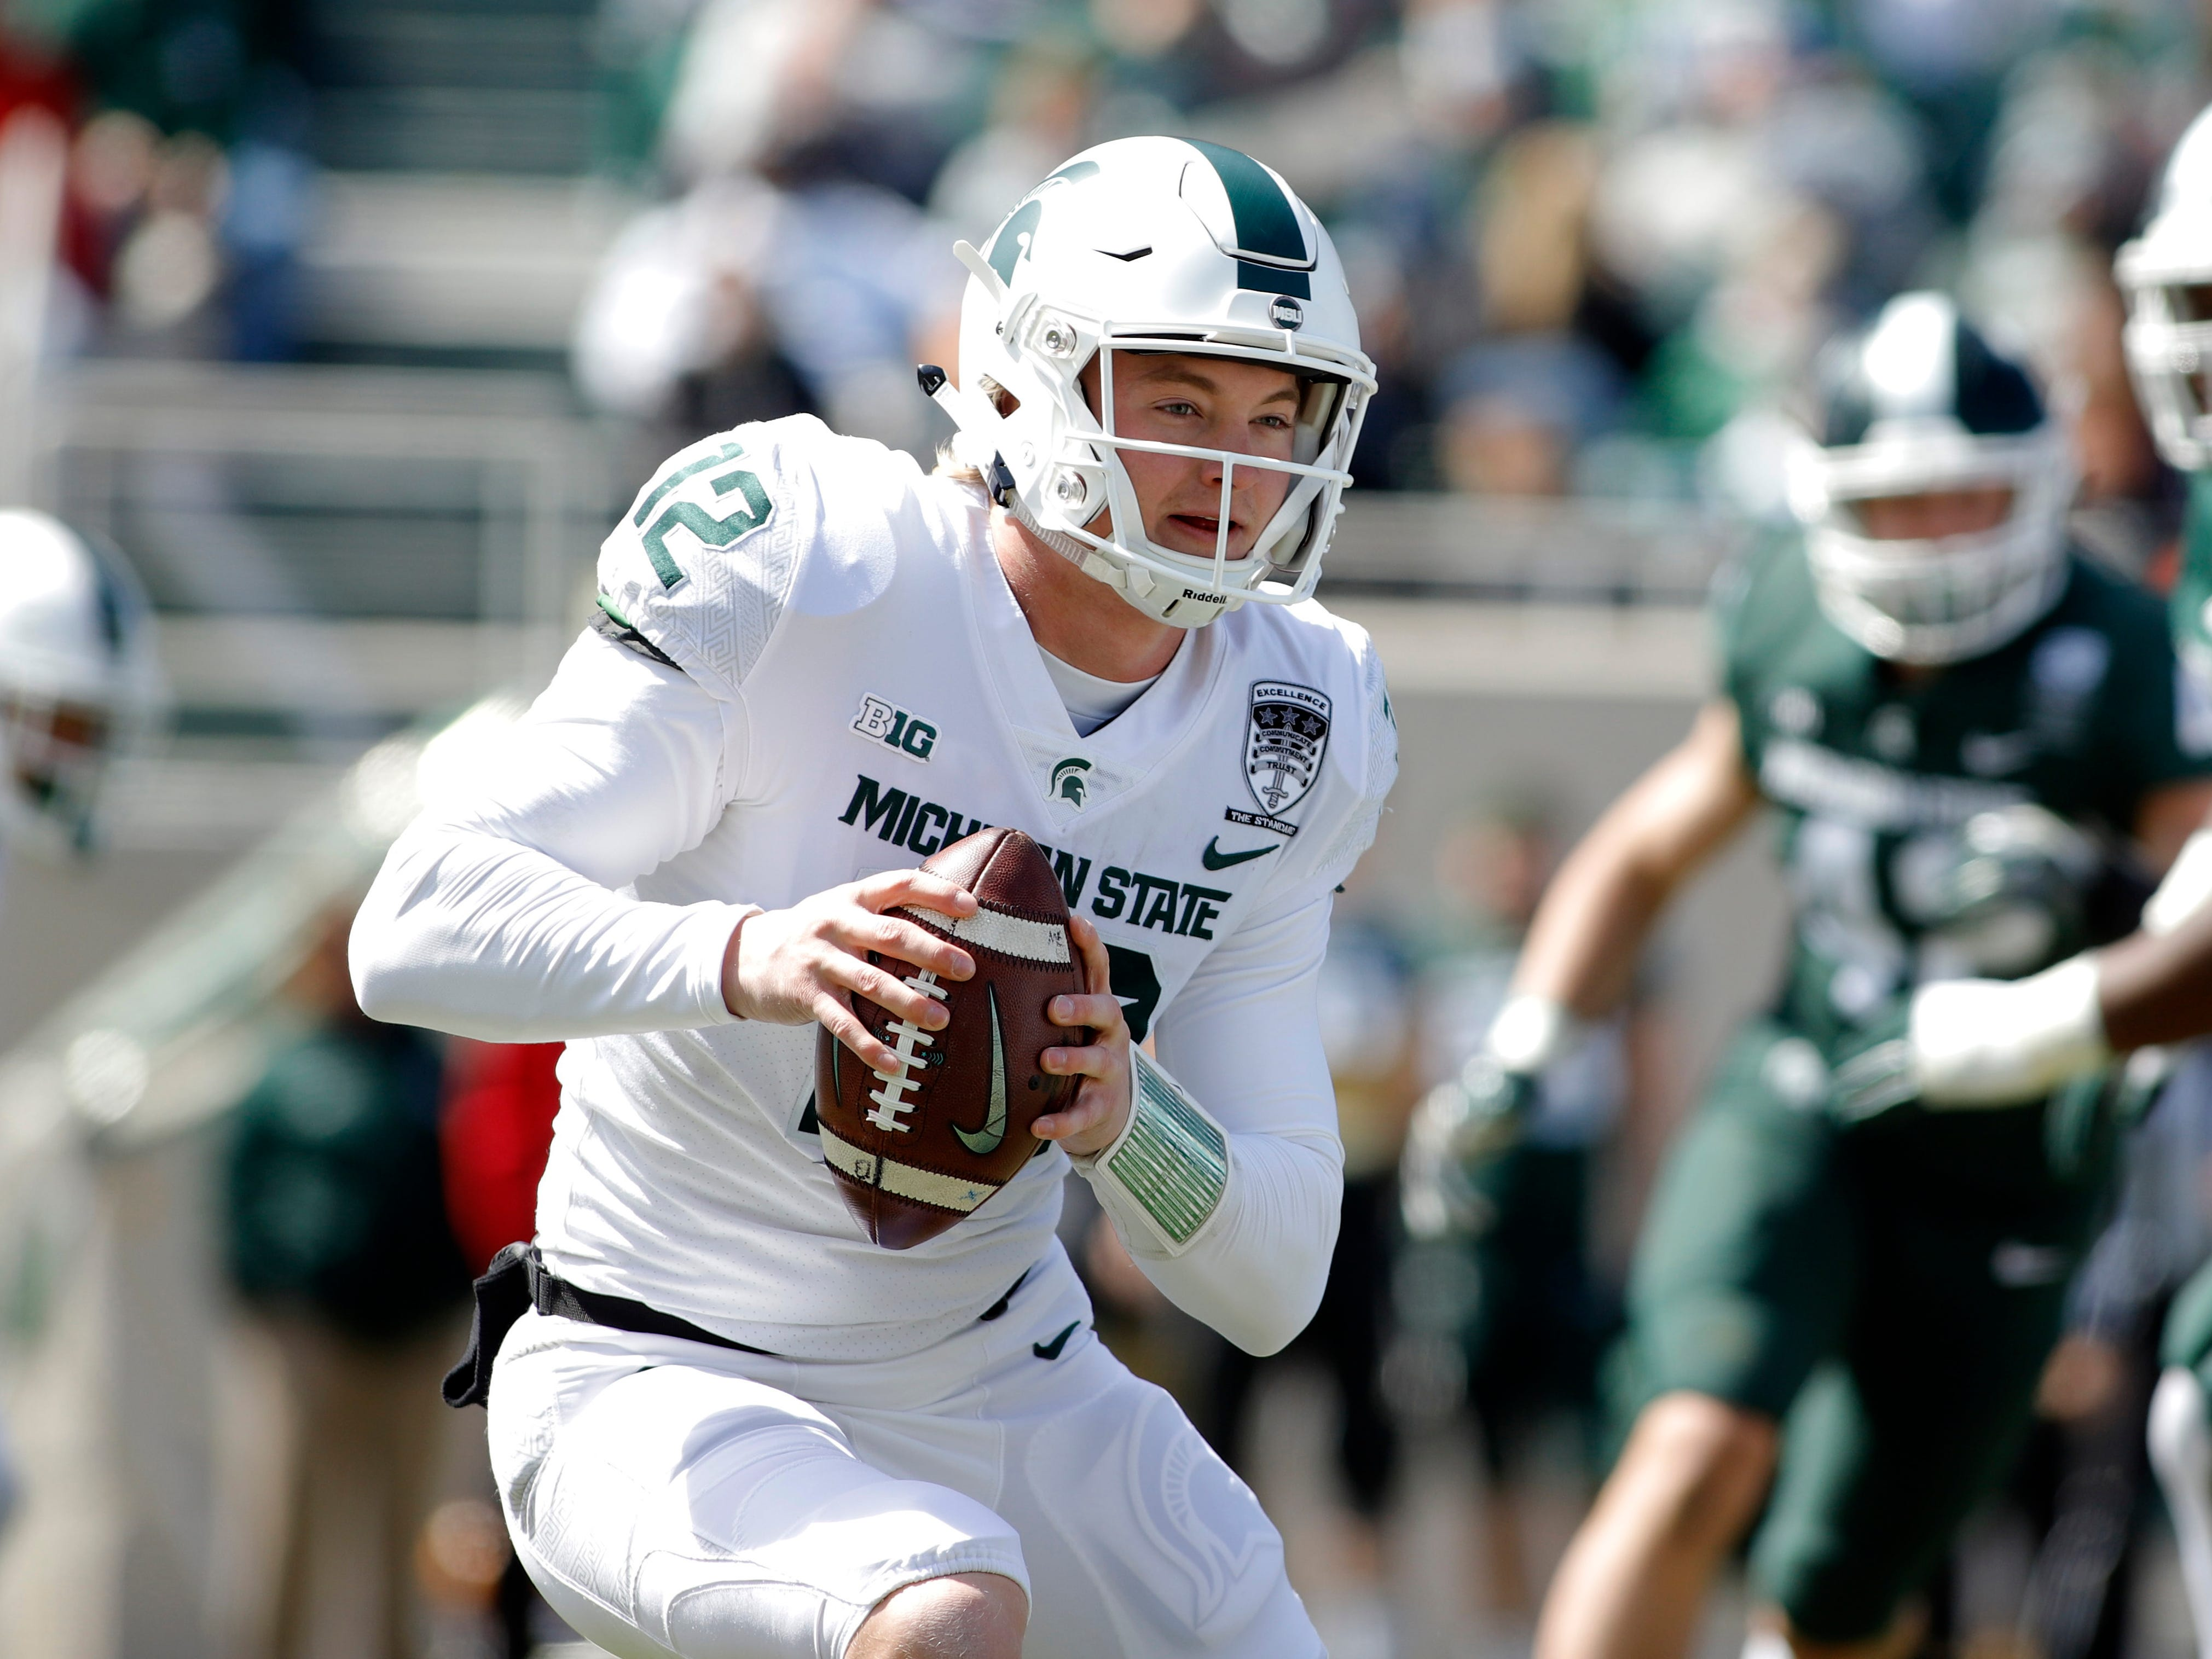 Michigan State quarterback Rocky Lombardi scrambles during an NCAA college football spring scrimmage game, Saturday, April 13, 2019, in East Lansing, Mich. (AP Photo/Al Goldis)